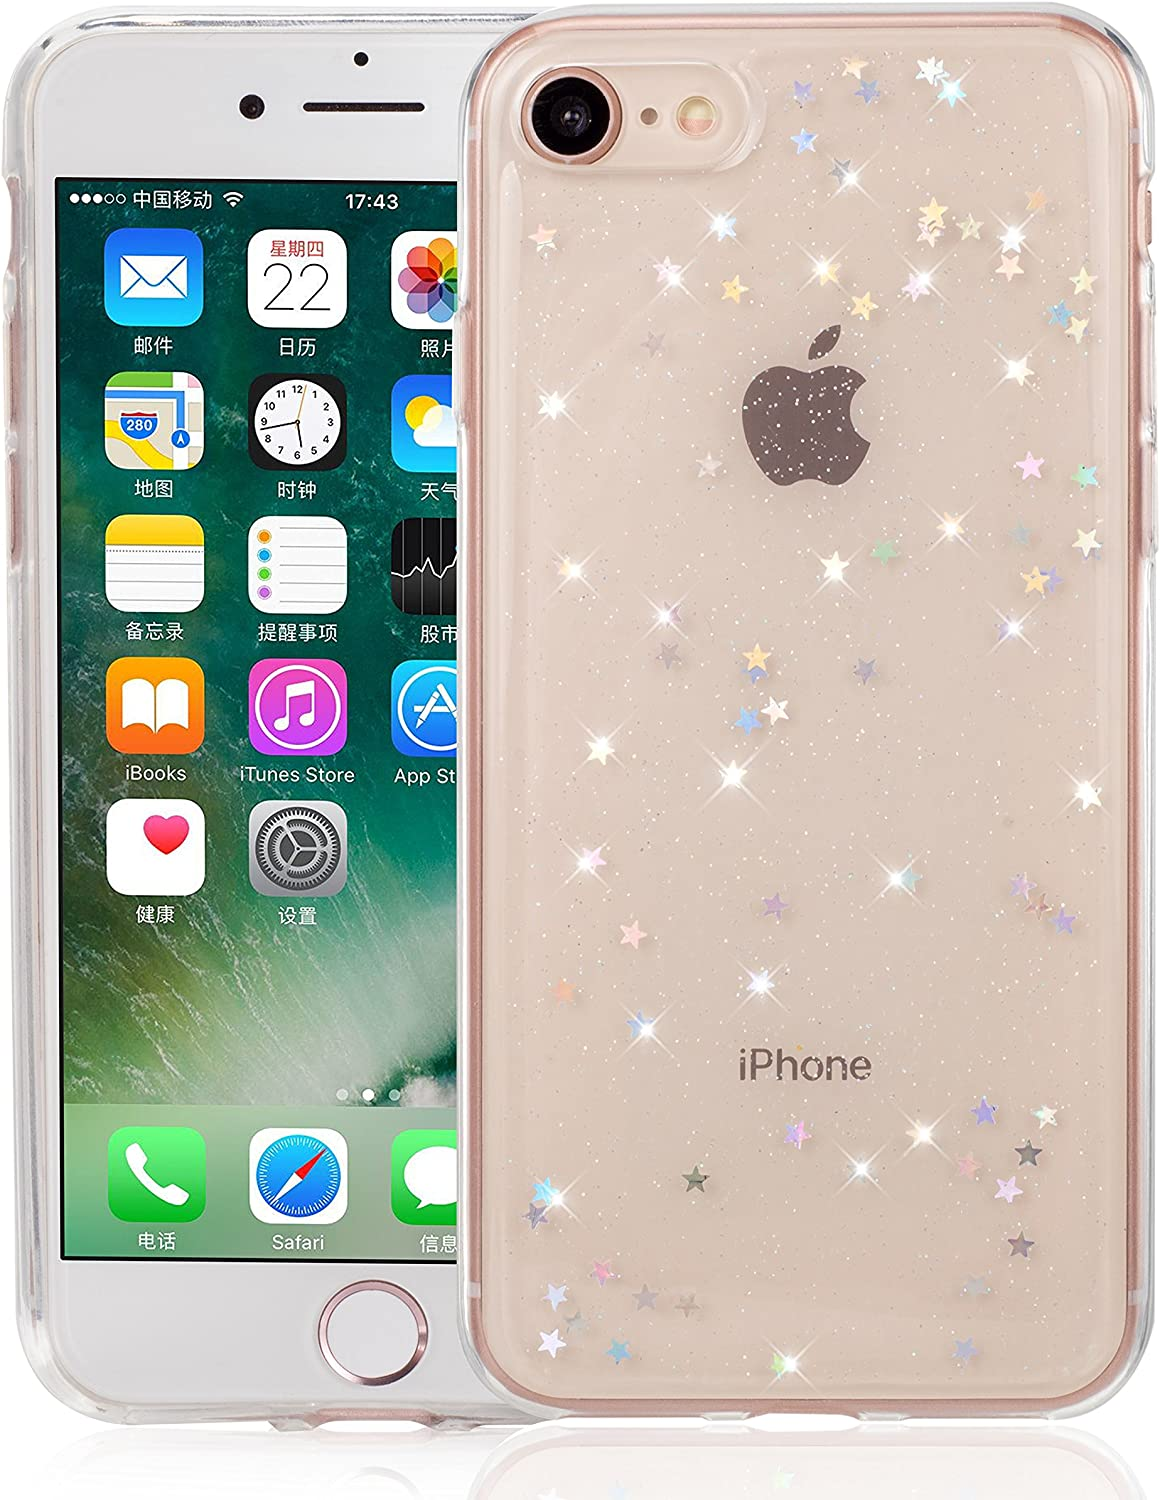 QLTYPRI iPhone SE 2020 Case iPhone 7 Case iPhone 8 Case Spark Glitter Cute Case for Women Girls Shining Bling Star Design Ultra Slim Shockproof Transparent Soft Gel TPU Protective Cover - Clear